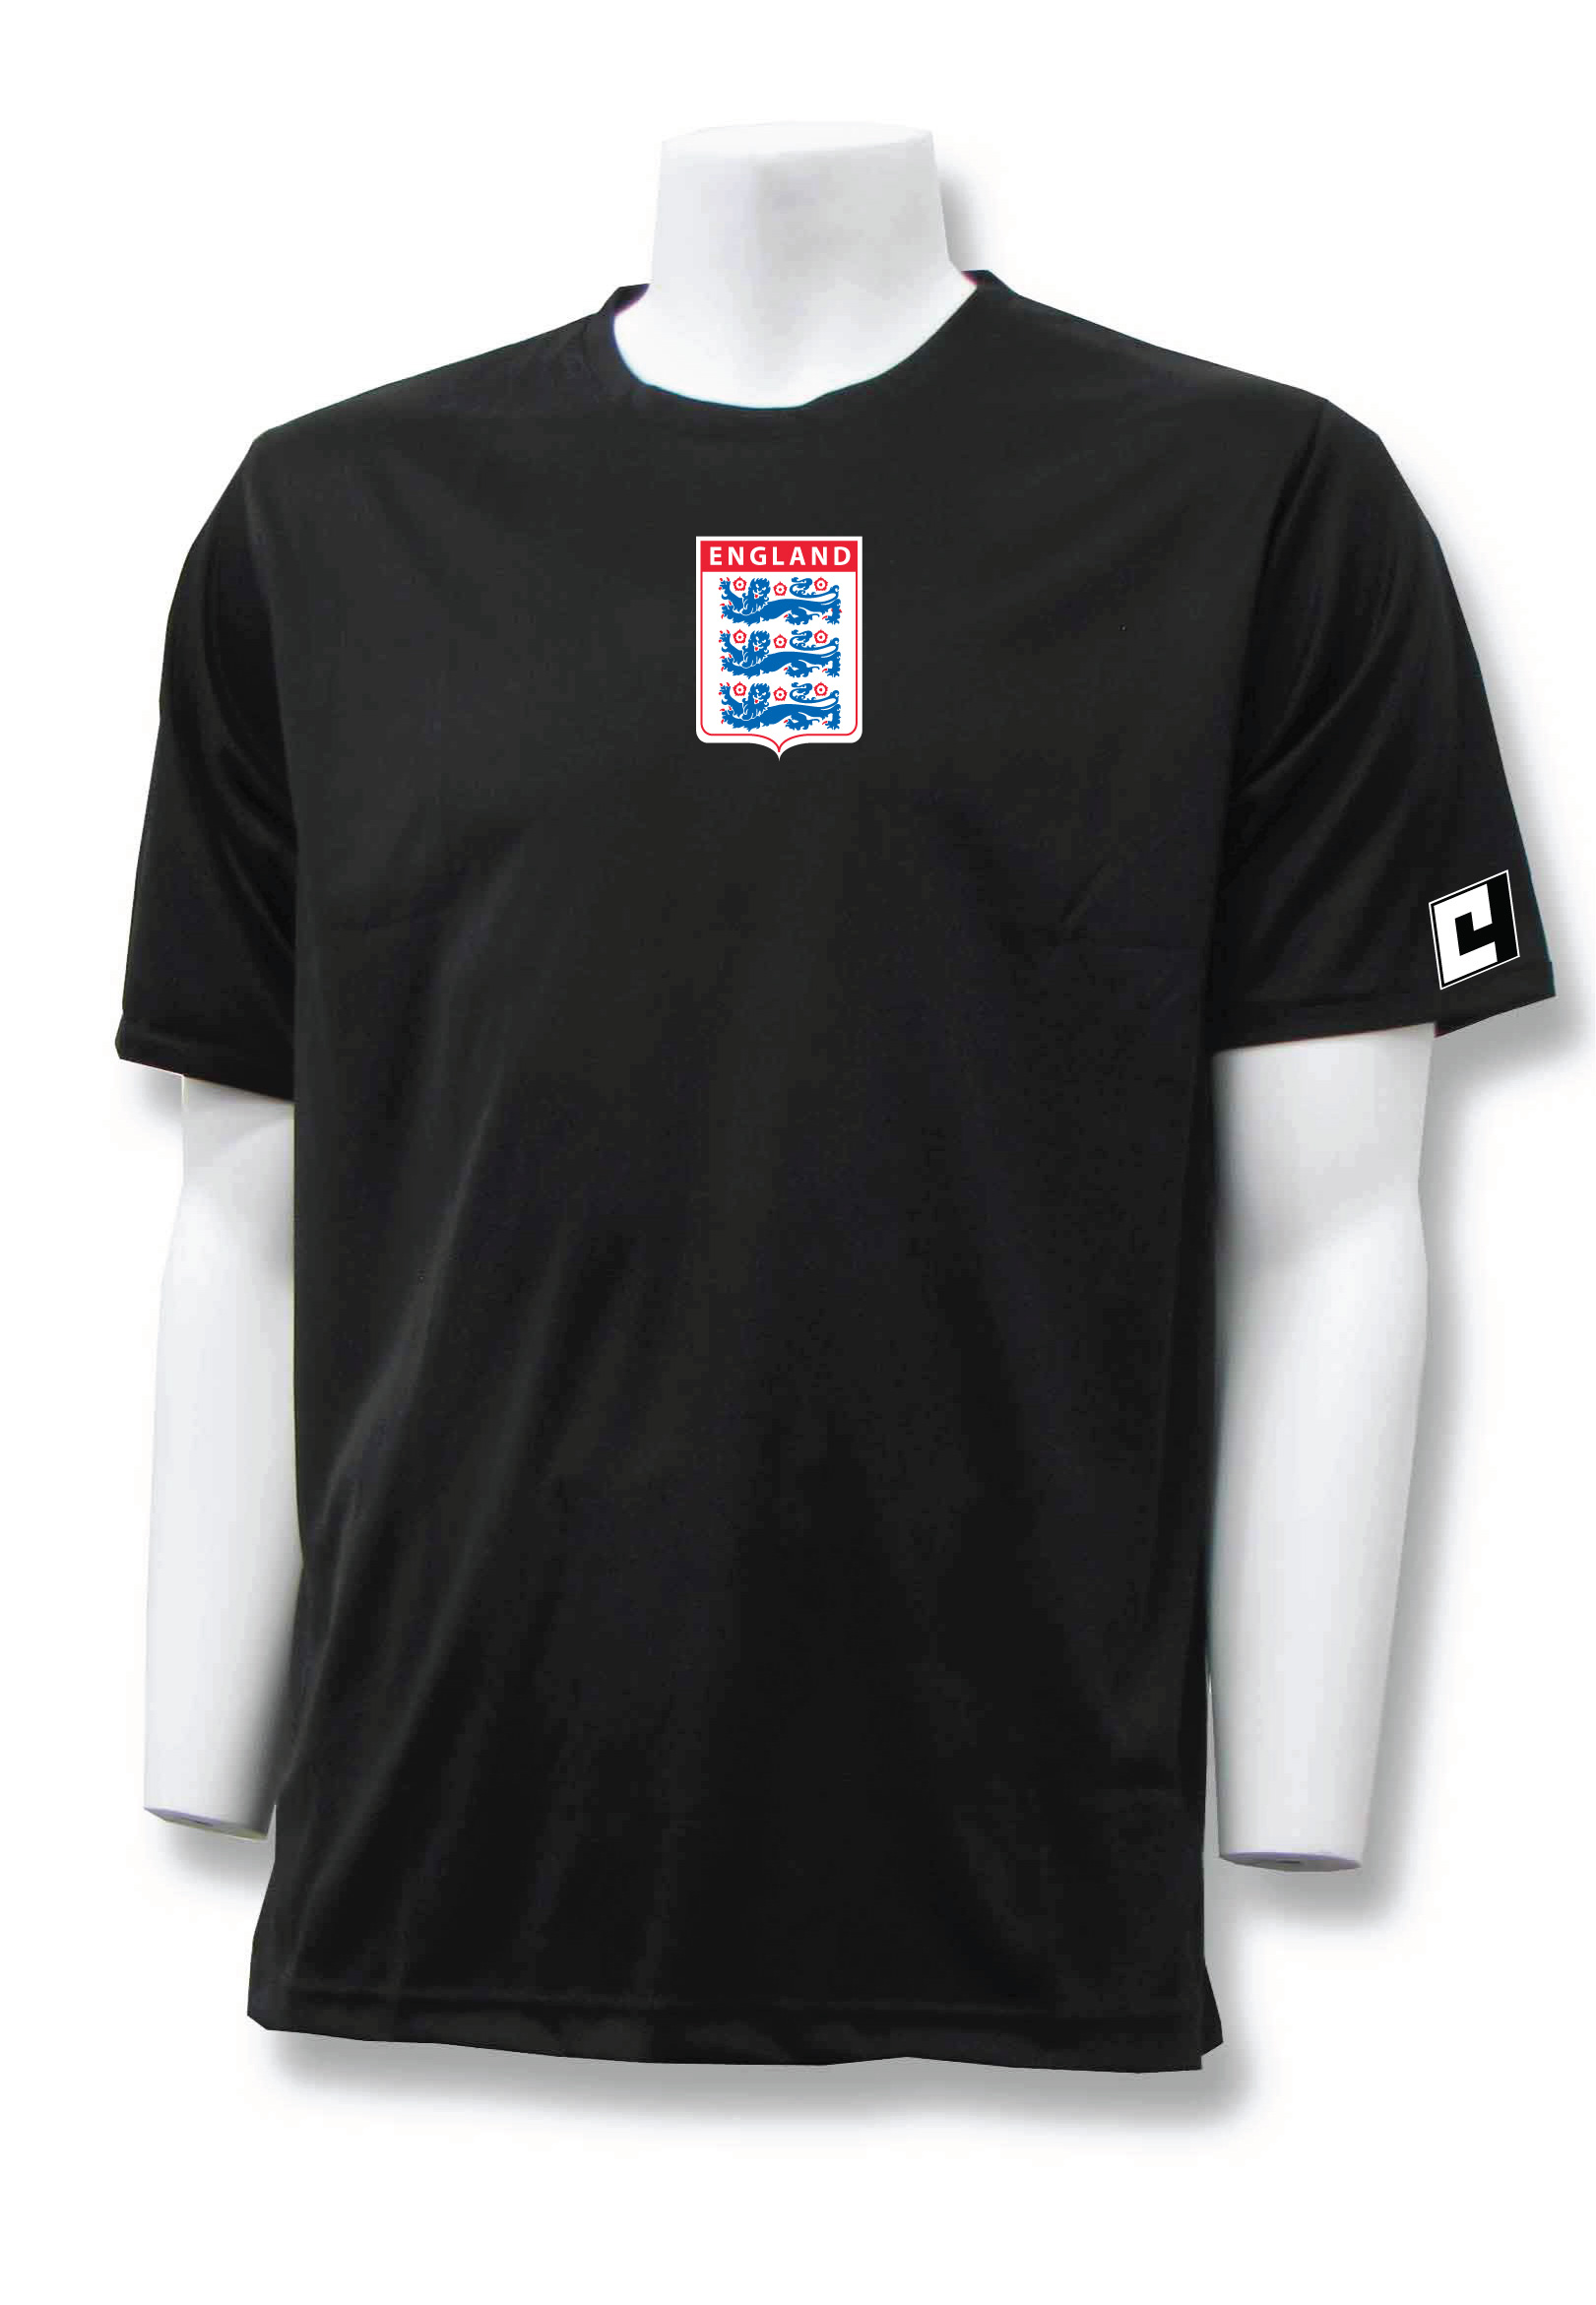 England workout top in black